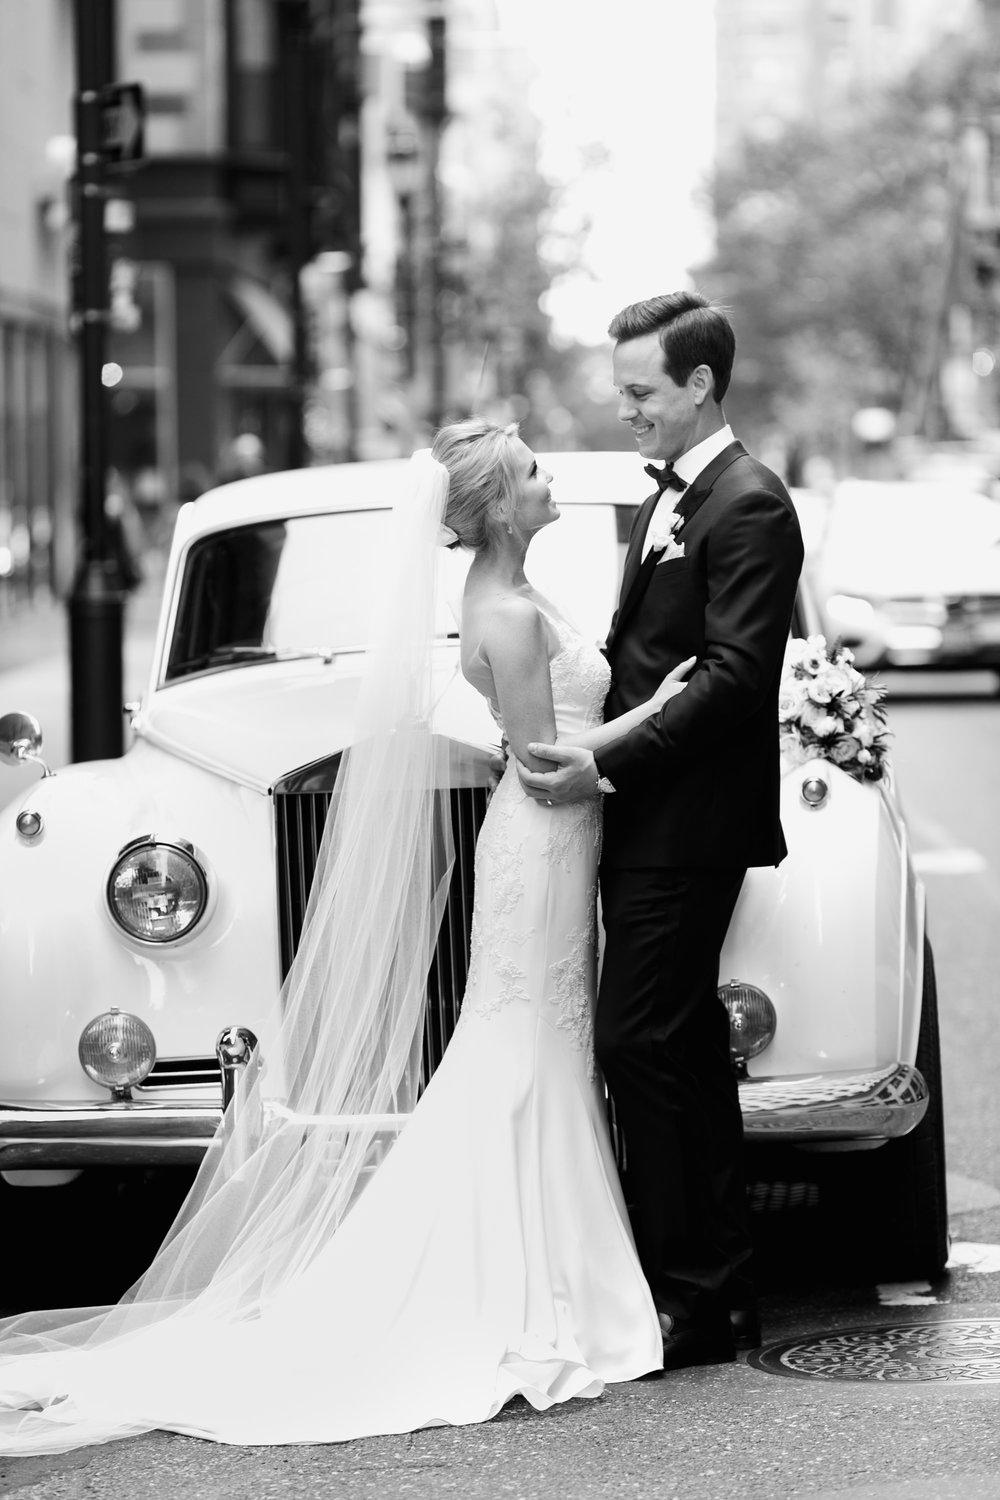 photography-wedding-weddings-natural-candid-union league-philadelphia-black tie-city hall-broad street-editorial-modern-fine-art-04.JPG